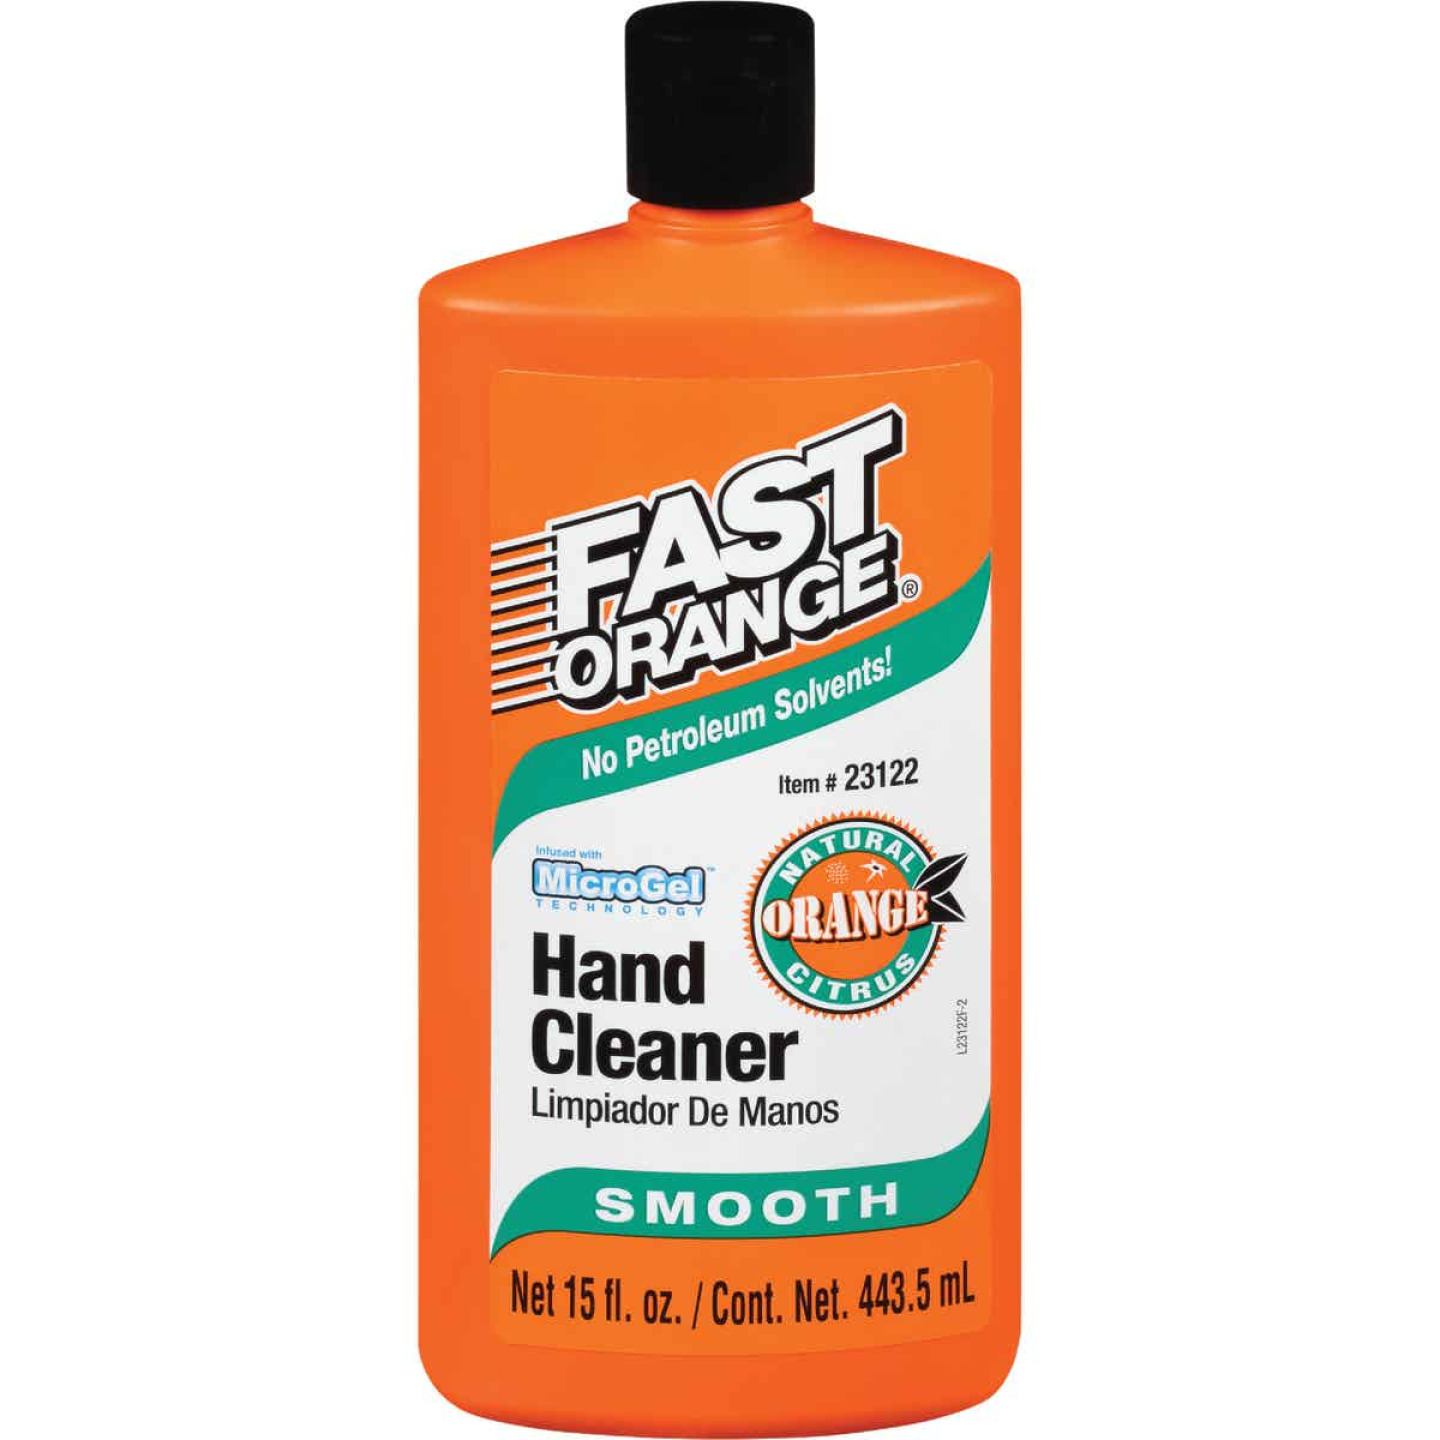 PERMATEX Fast Orange Smooth Orange Citrus Hand Cleaner, 15 Oz.  Image 1